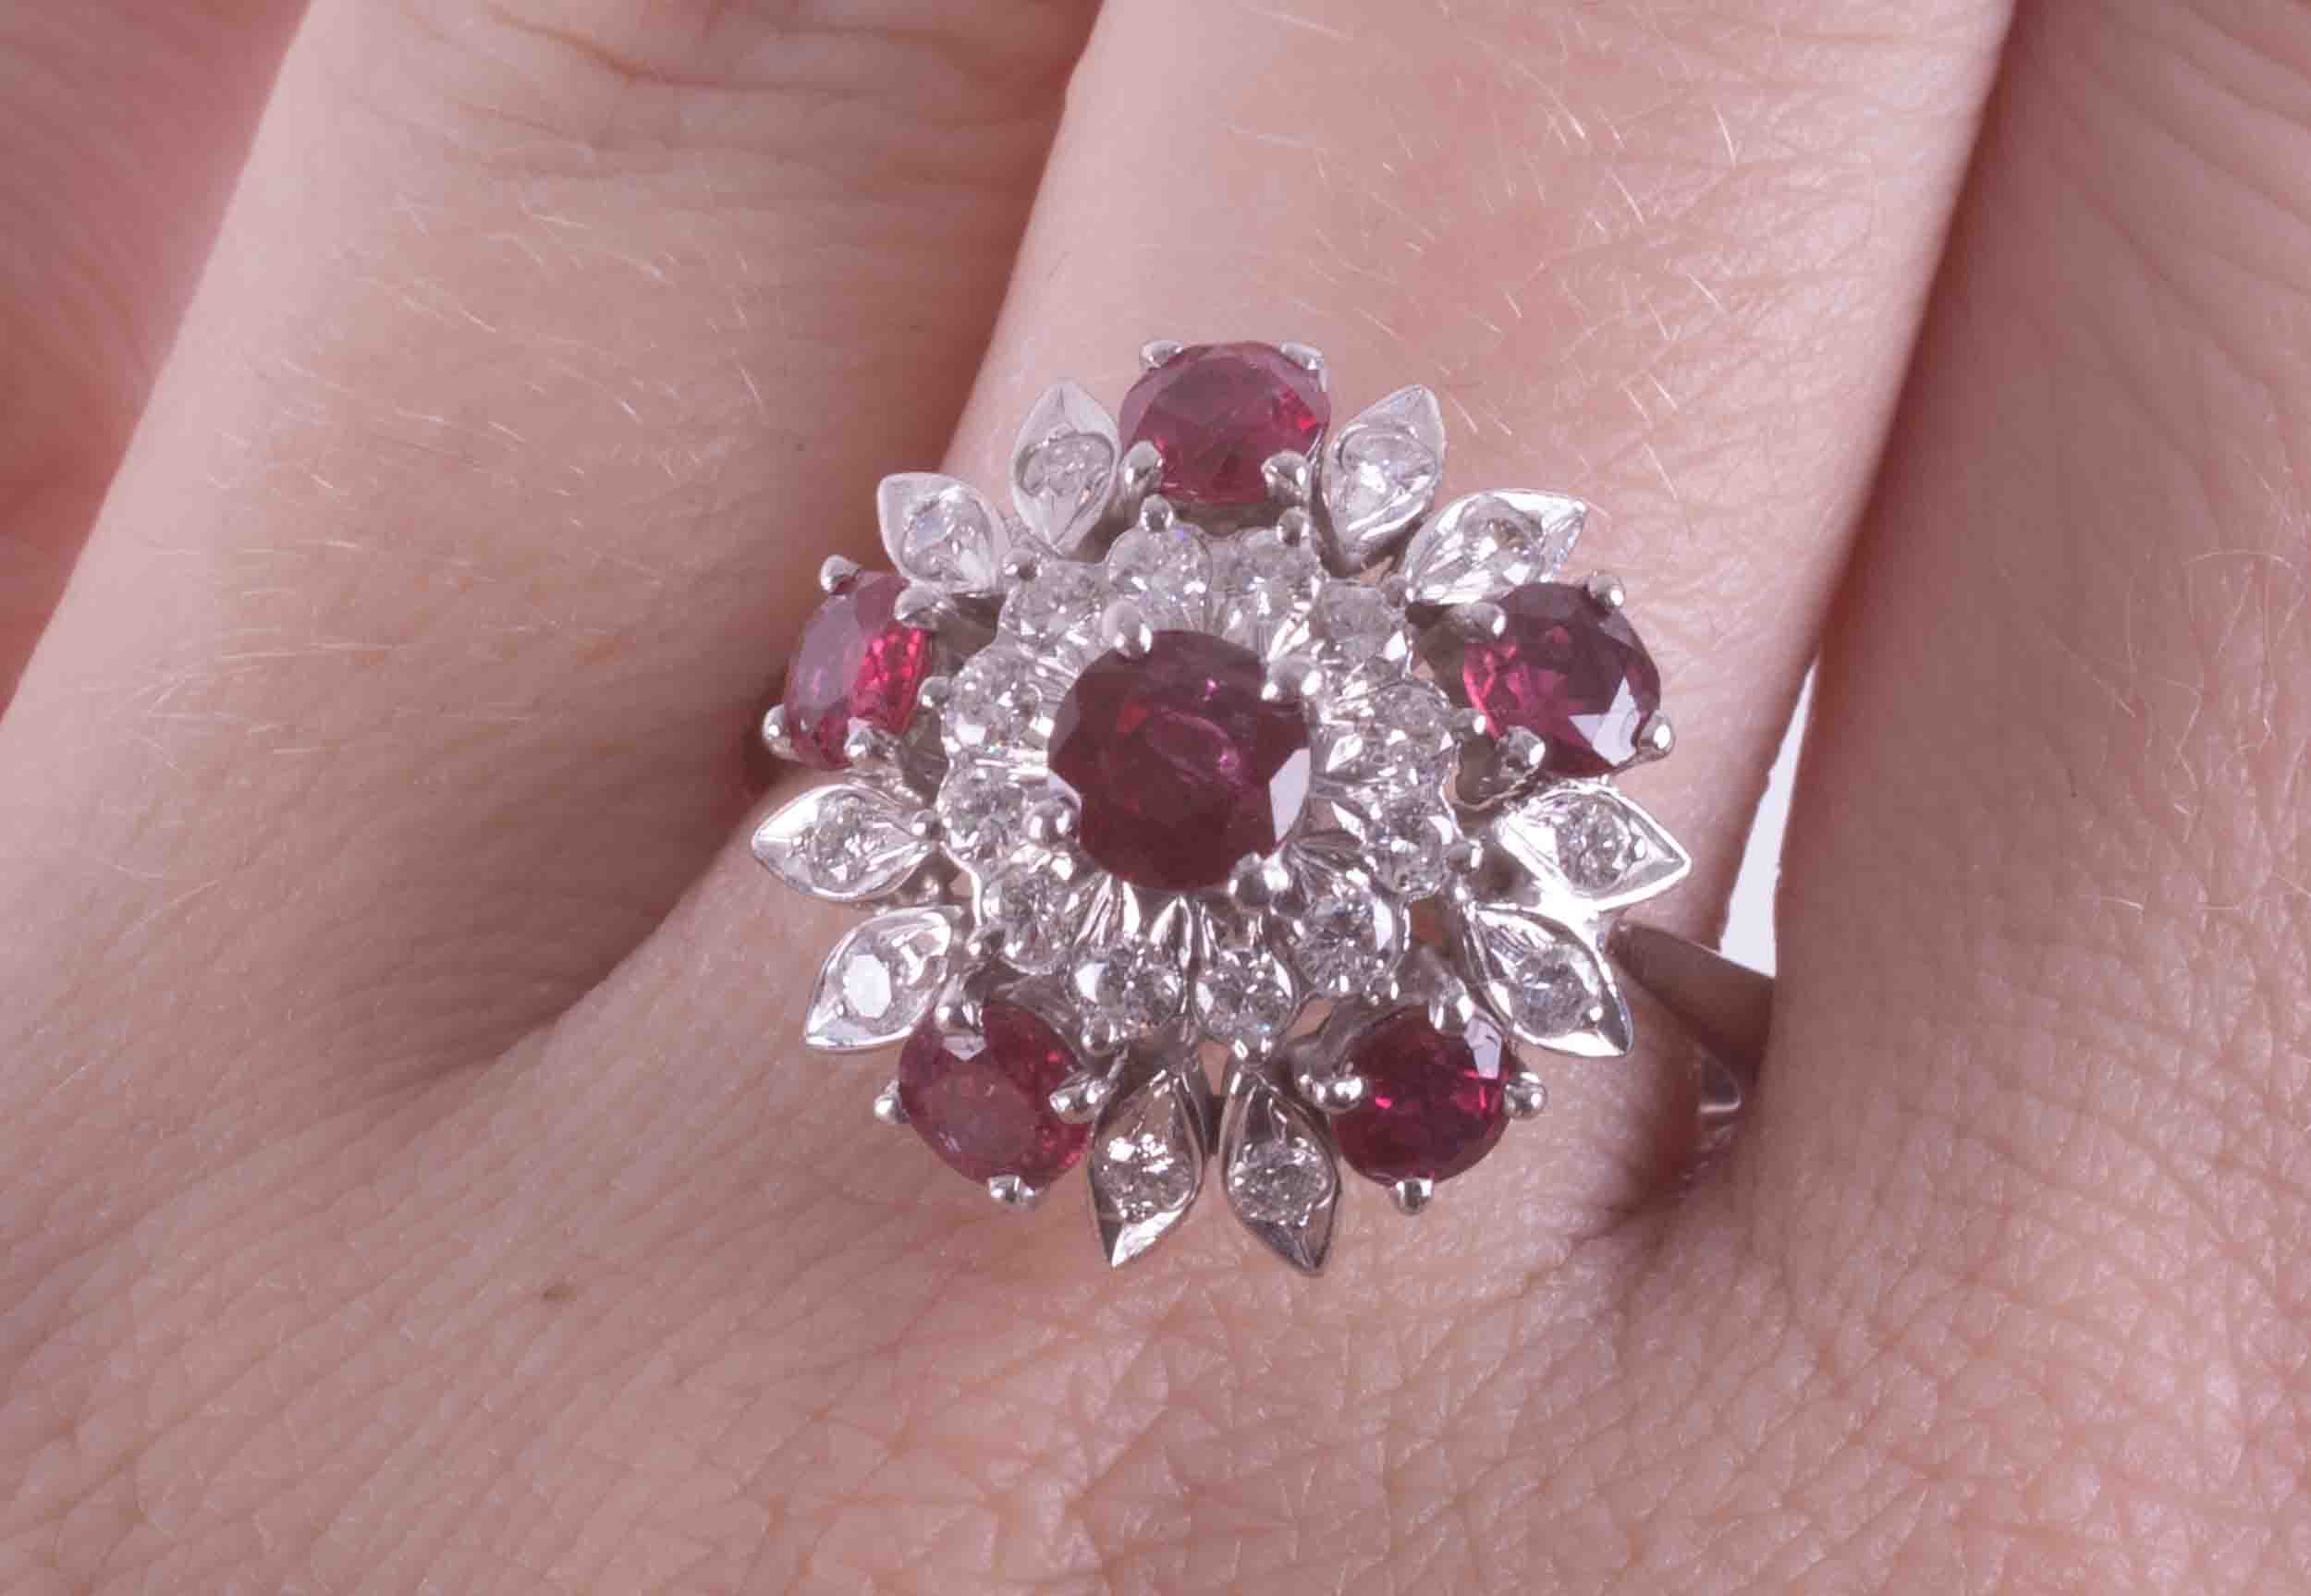 A 14ct white gold flower design cluster ring set with approx. 1.75 carats of round cut rubies - Image 2 of 2